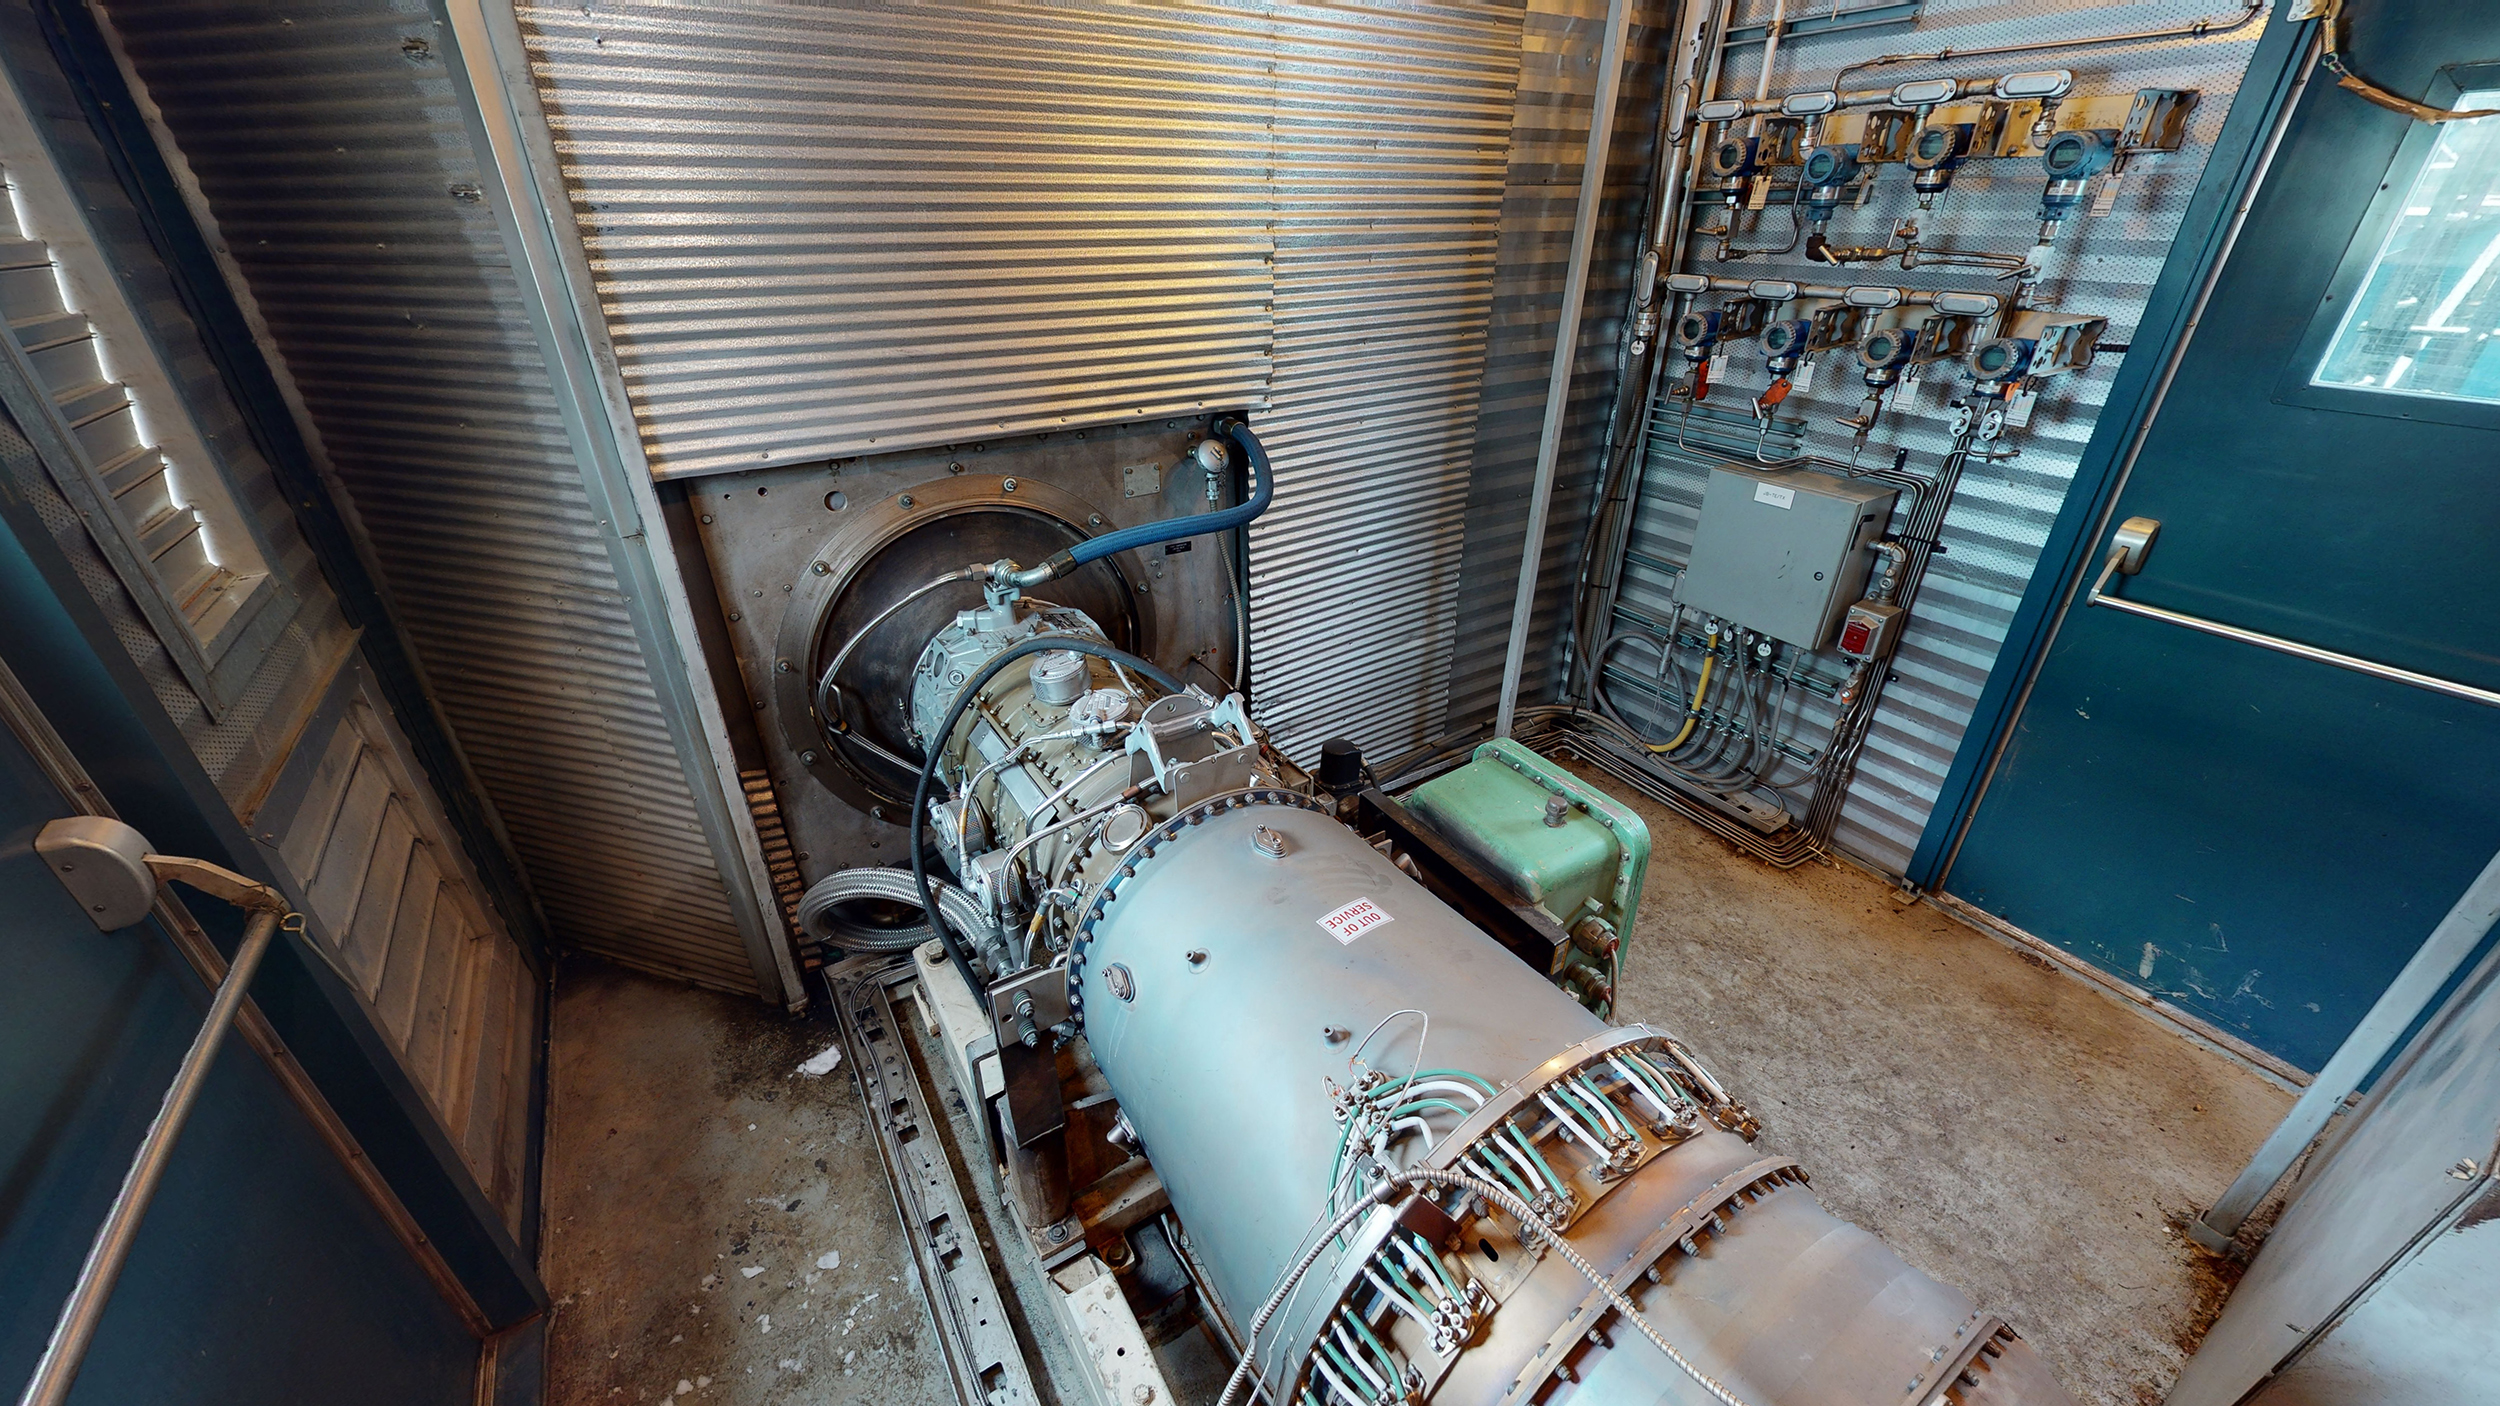 Interior 4 - natural gas turbine - Used 2500 kW / 2 MW Allison Natural Gas Turbine Generator Package for sale in Alberta